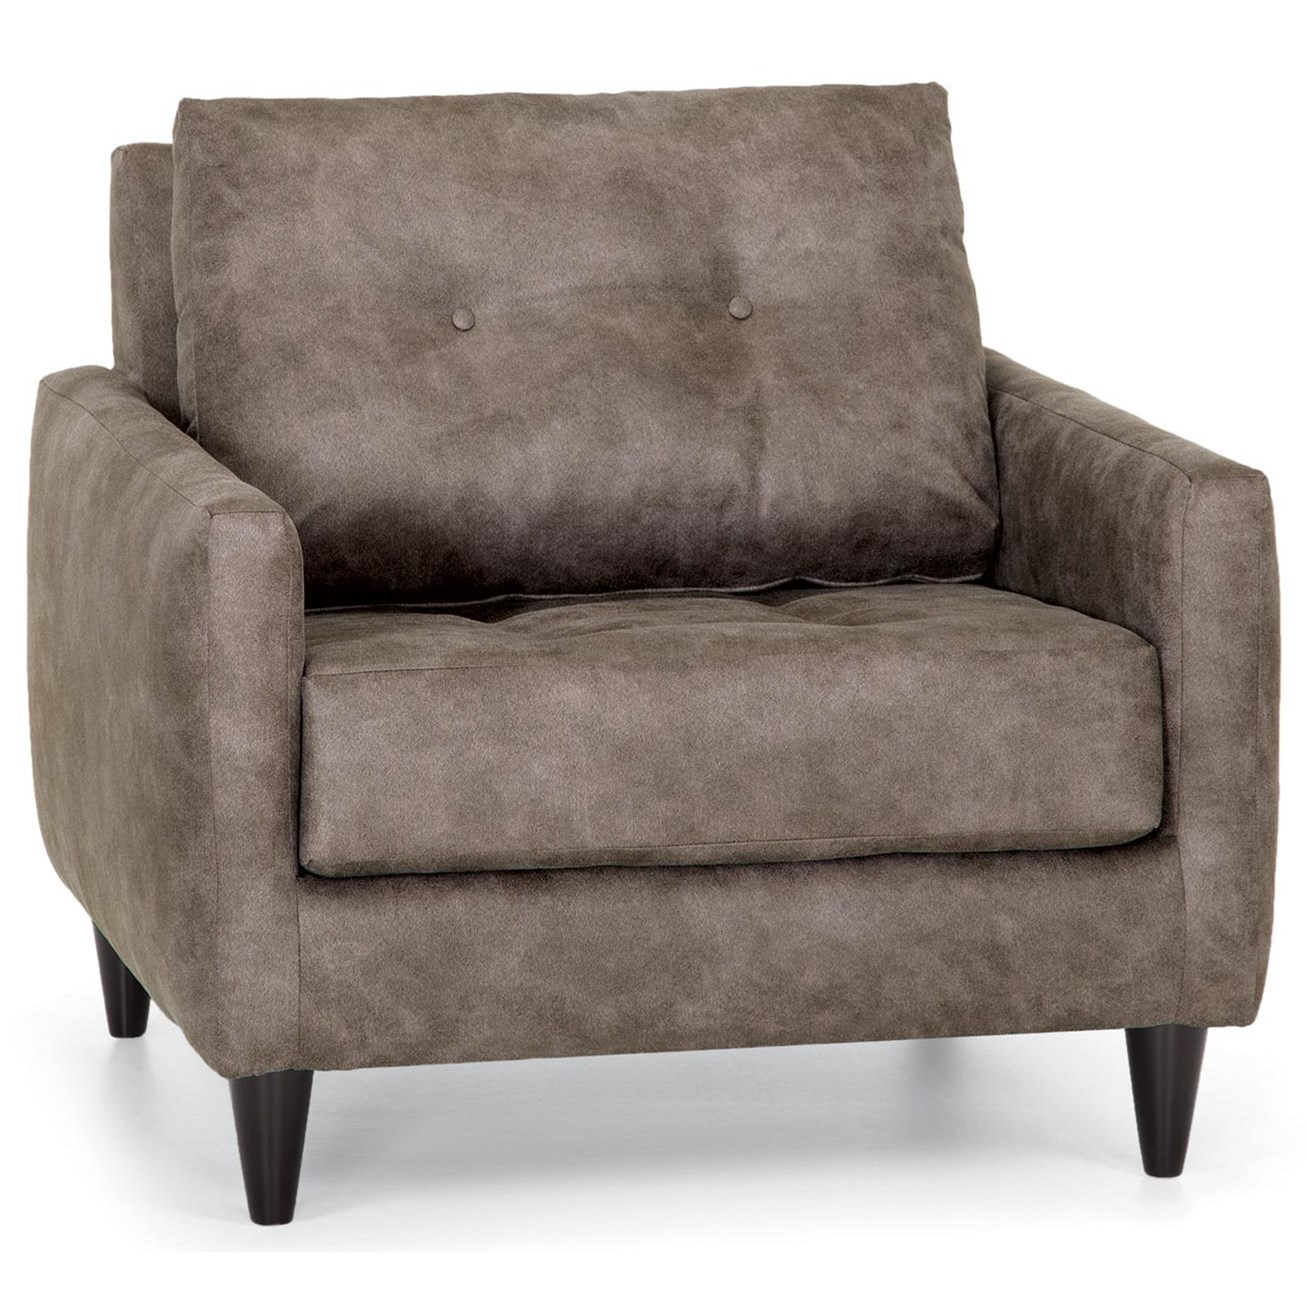 Argentine 838 Accent Chair by Franklin at Virginia Furniture Market